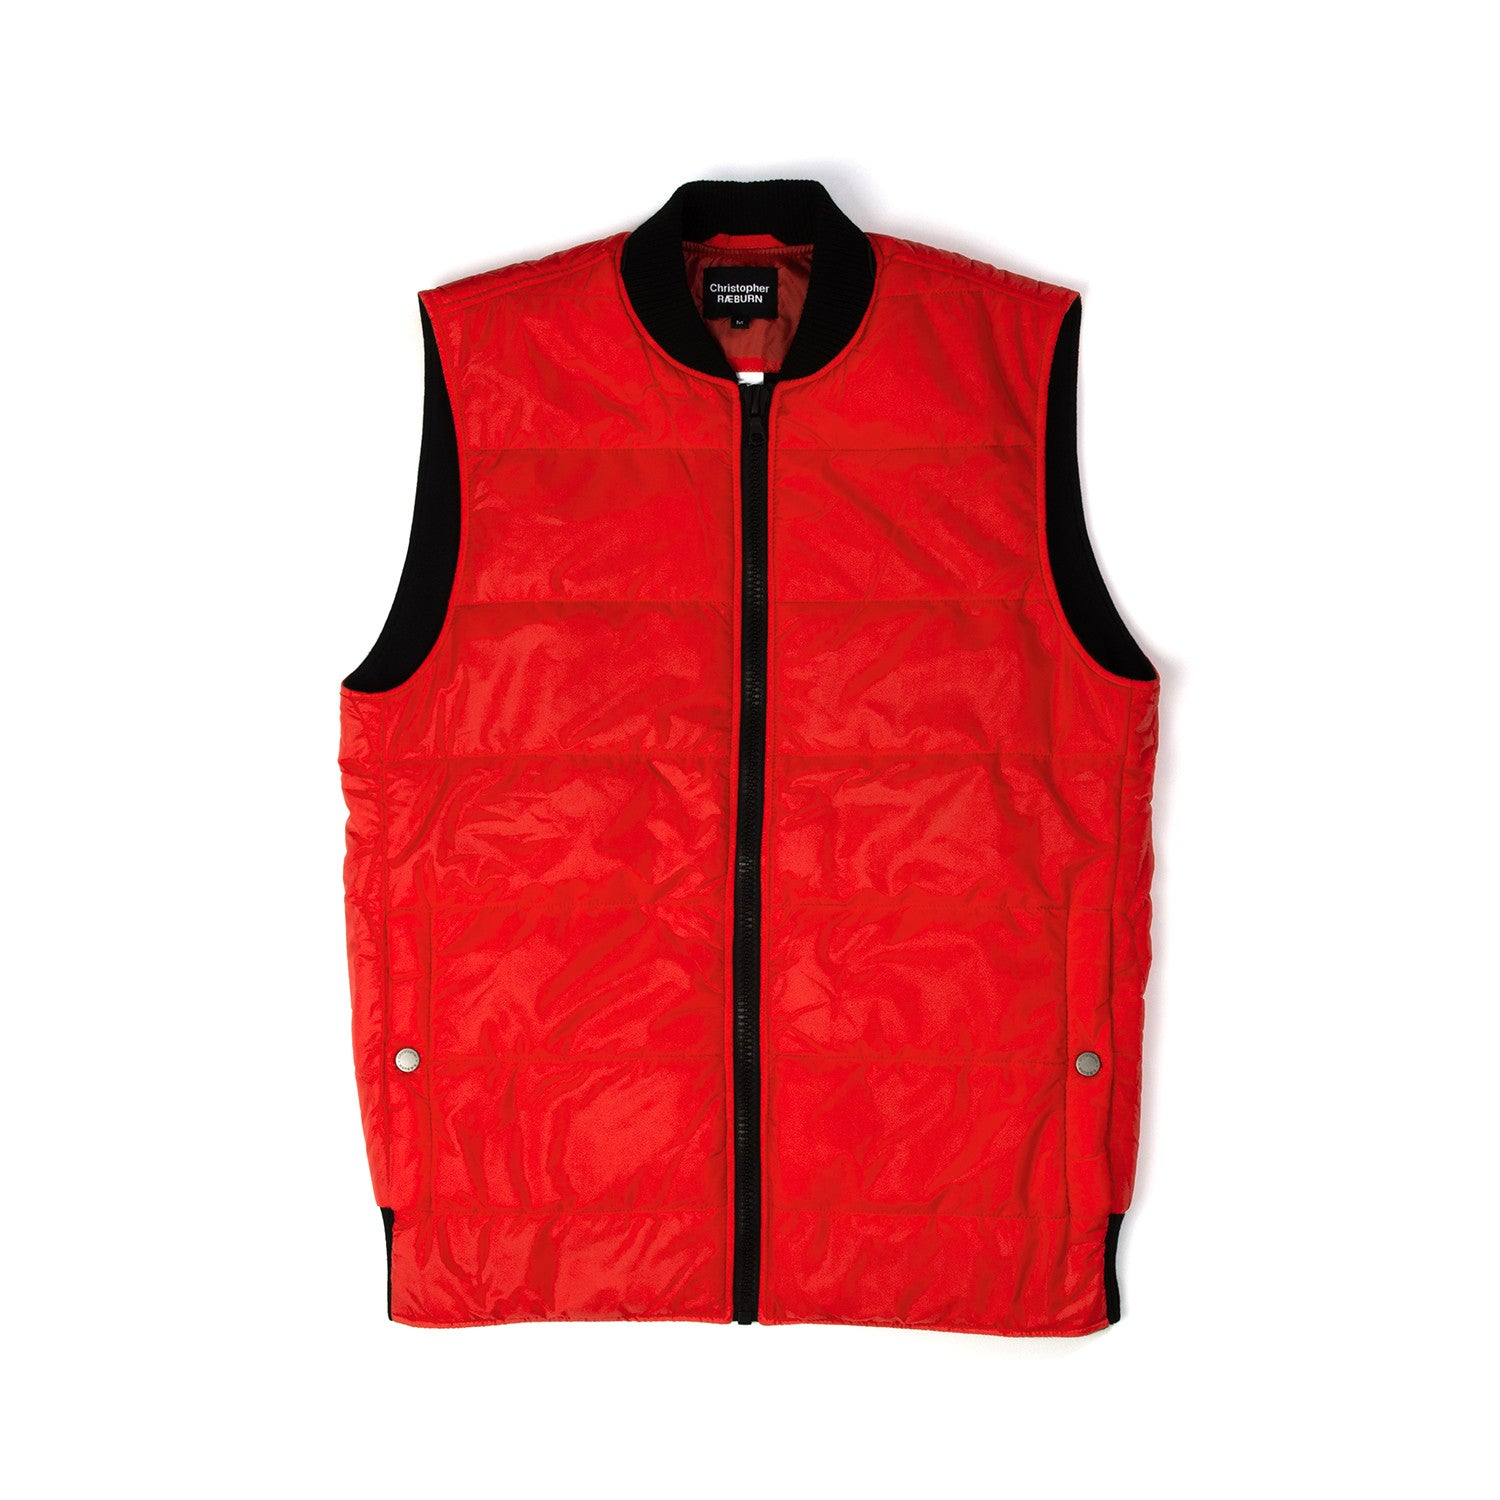 Christopher Raeburn Men's Quilted Gilet Red - Concrete